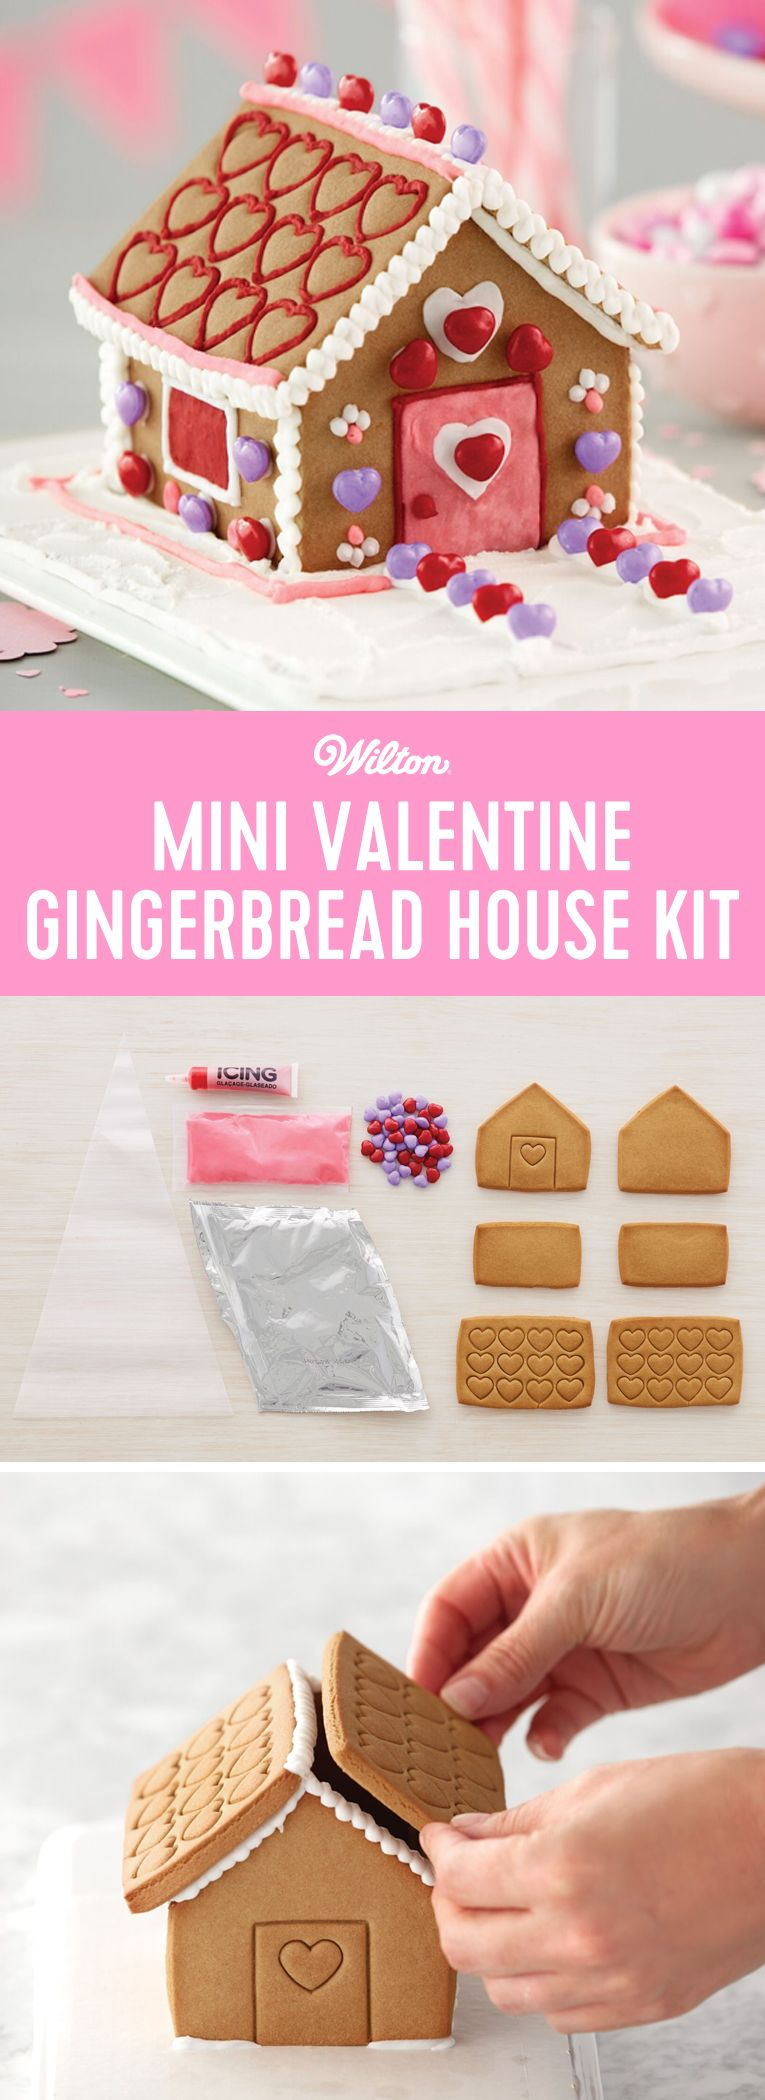 Pink Valentine S Gingerbread House Kit Recipe Gingerbread House Kits Gingerbread House Cake Decorating For Beginners